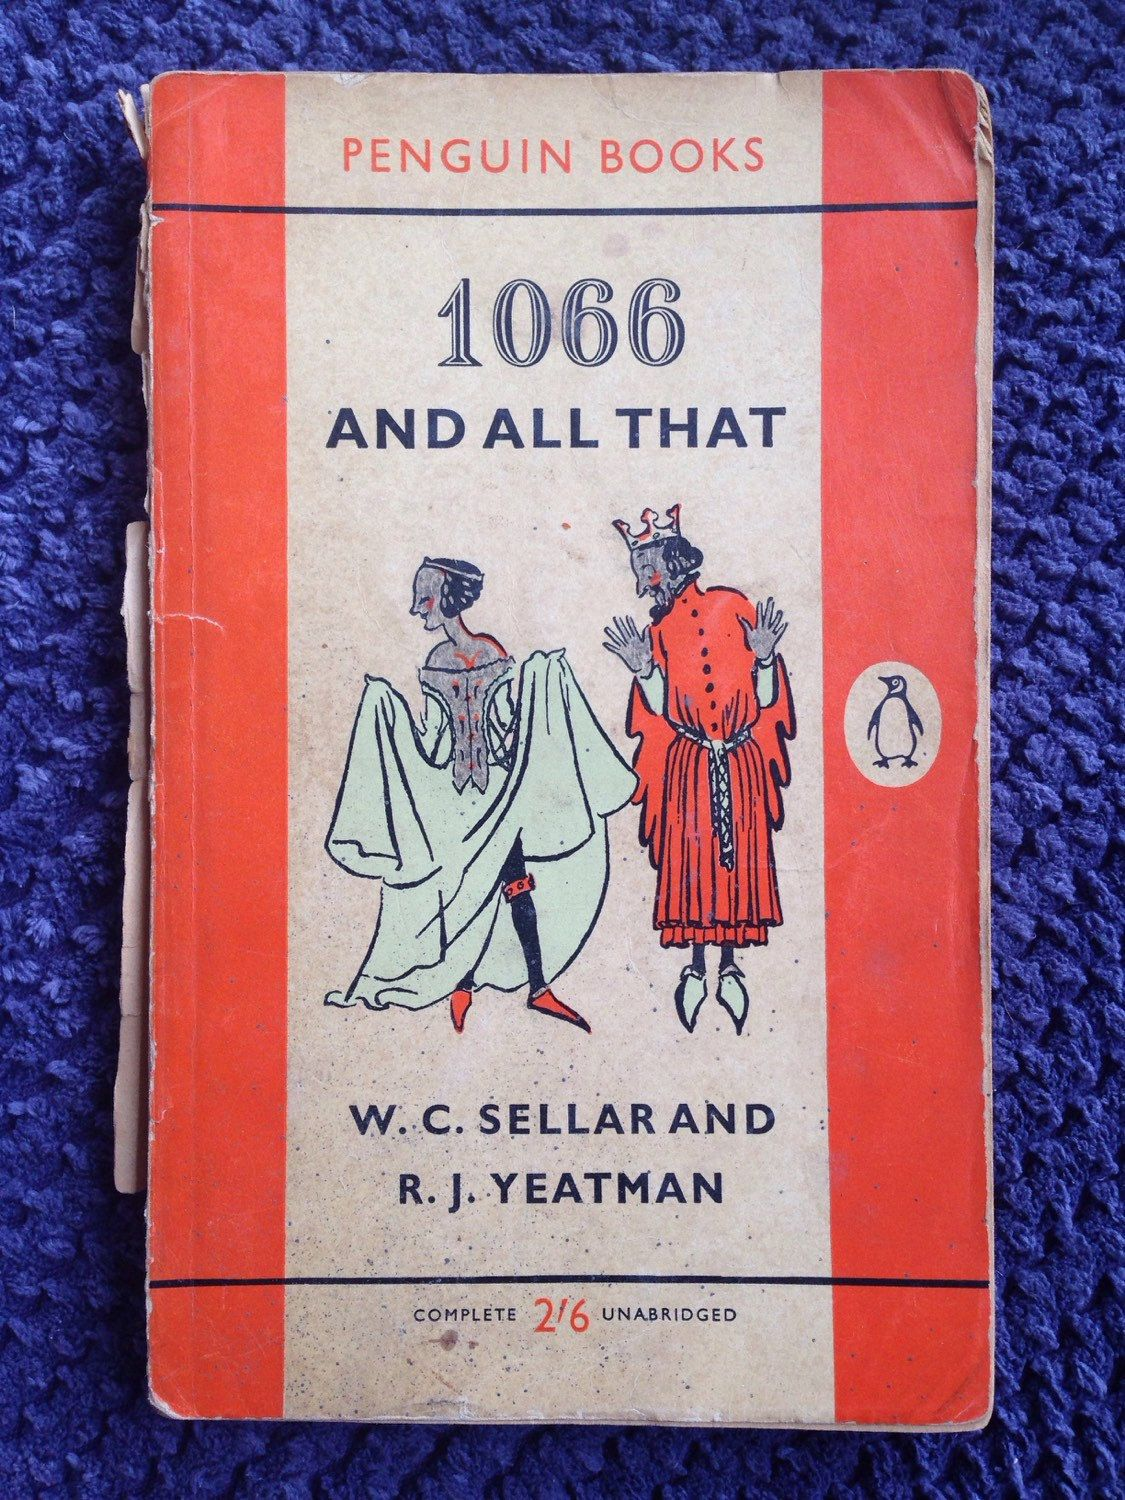 Vintage Penguin Book Covers : Vintage penguin book and all that by w c sellar